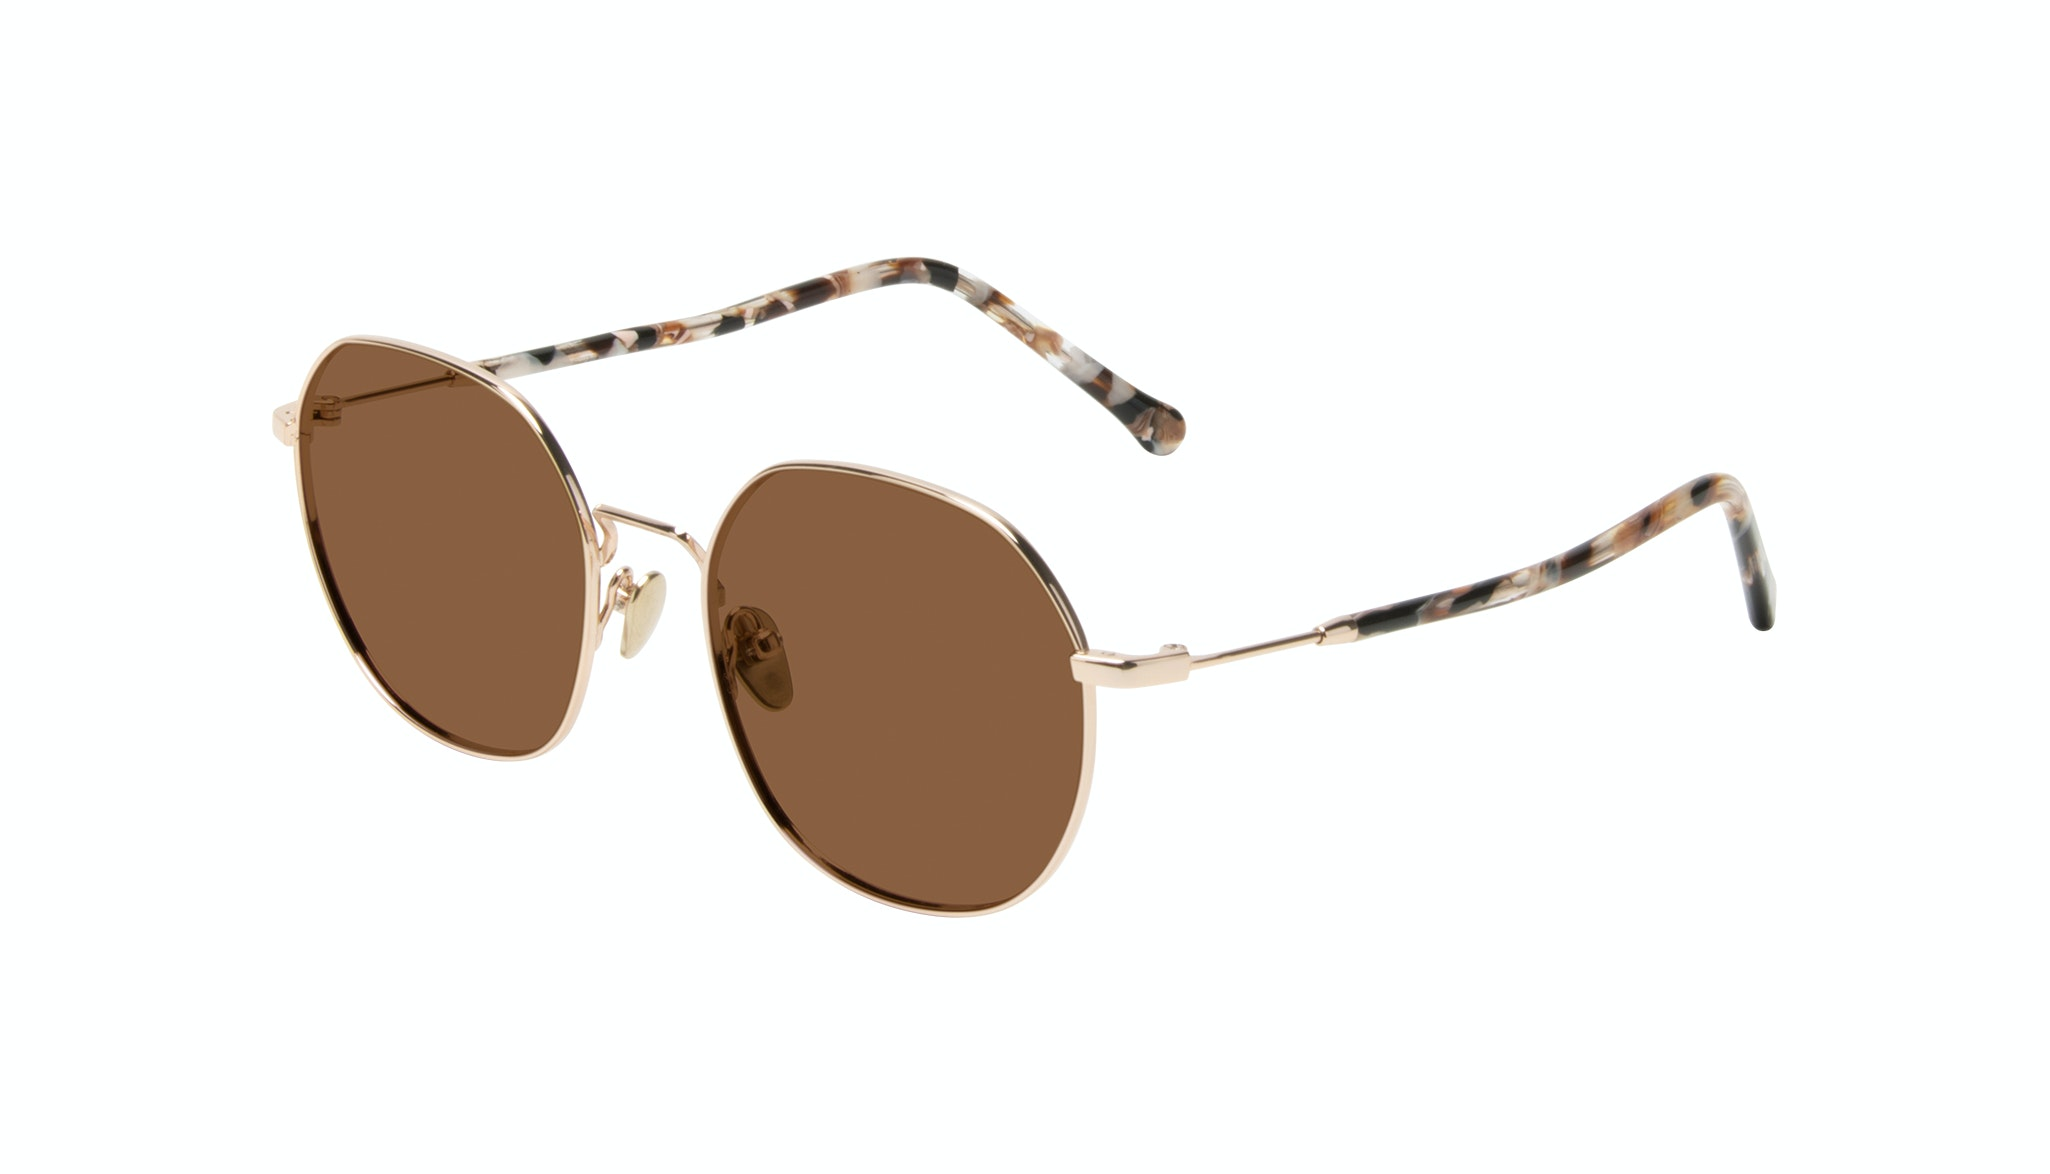 Affordable Fashion Glasses Round Sunglasses Women Coco Gold Tilt